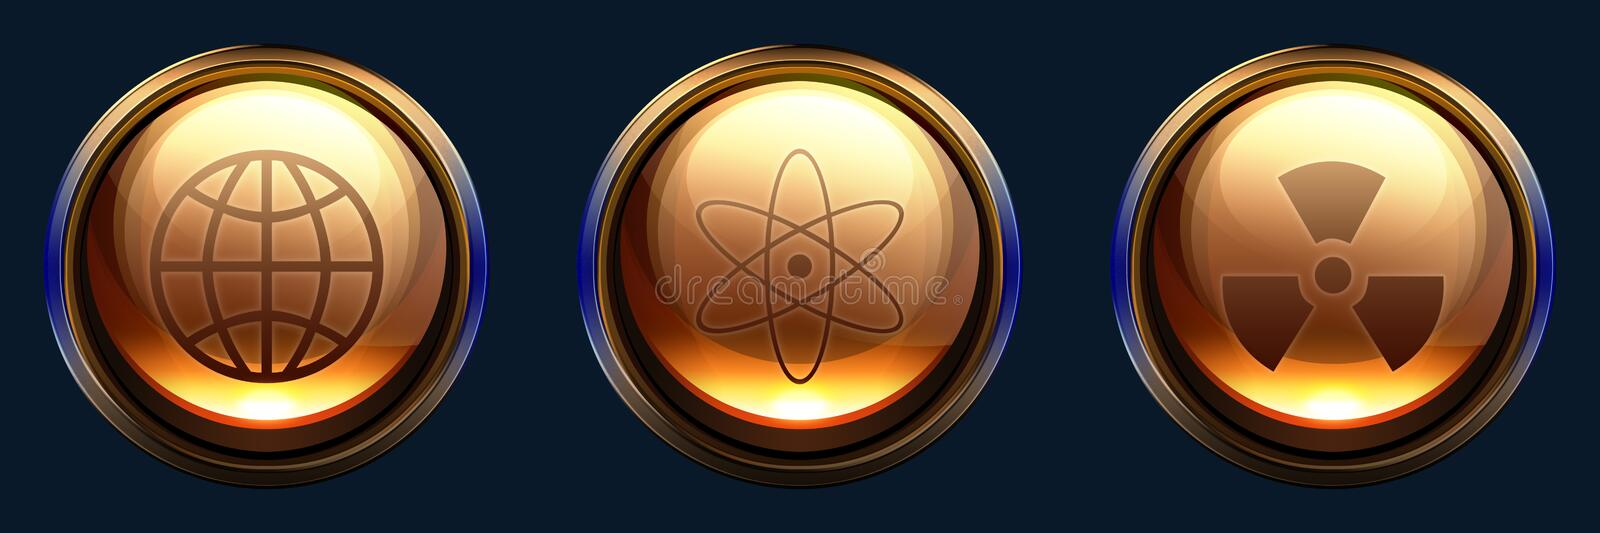 Download Science icon pack stock illustration. Image of sphere - 17193134